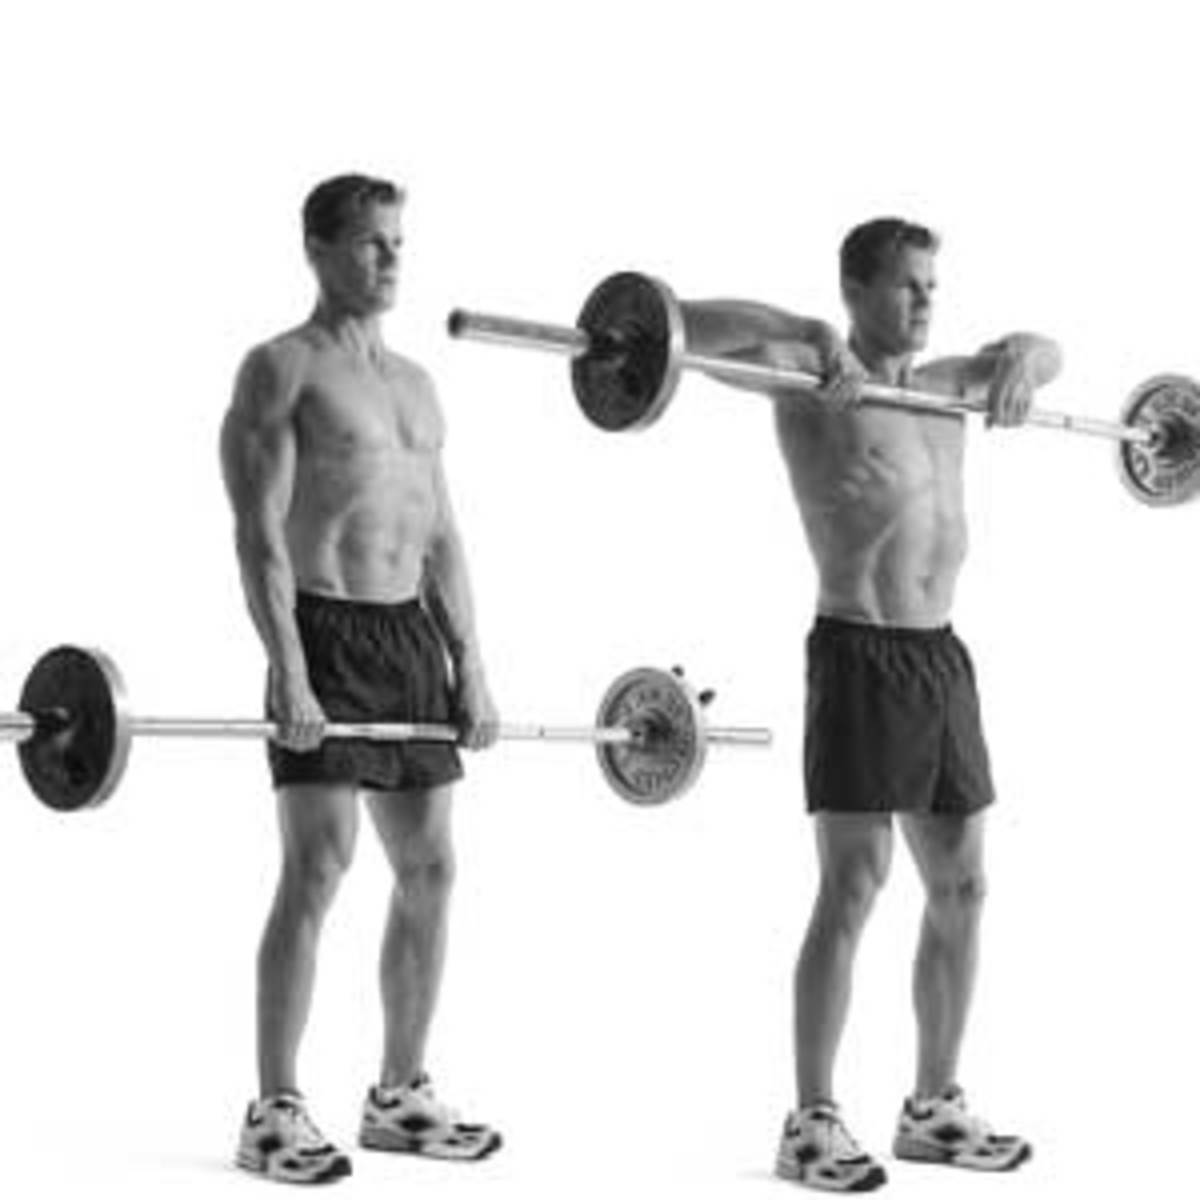 Upright barbell row. Lift the barbell up to the top of your chest, but don't rest it there, and hold for about a second and release, repeat.